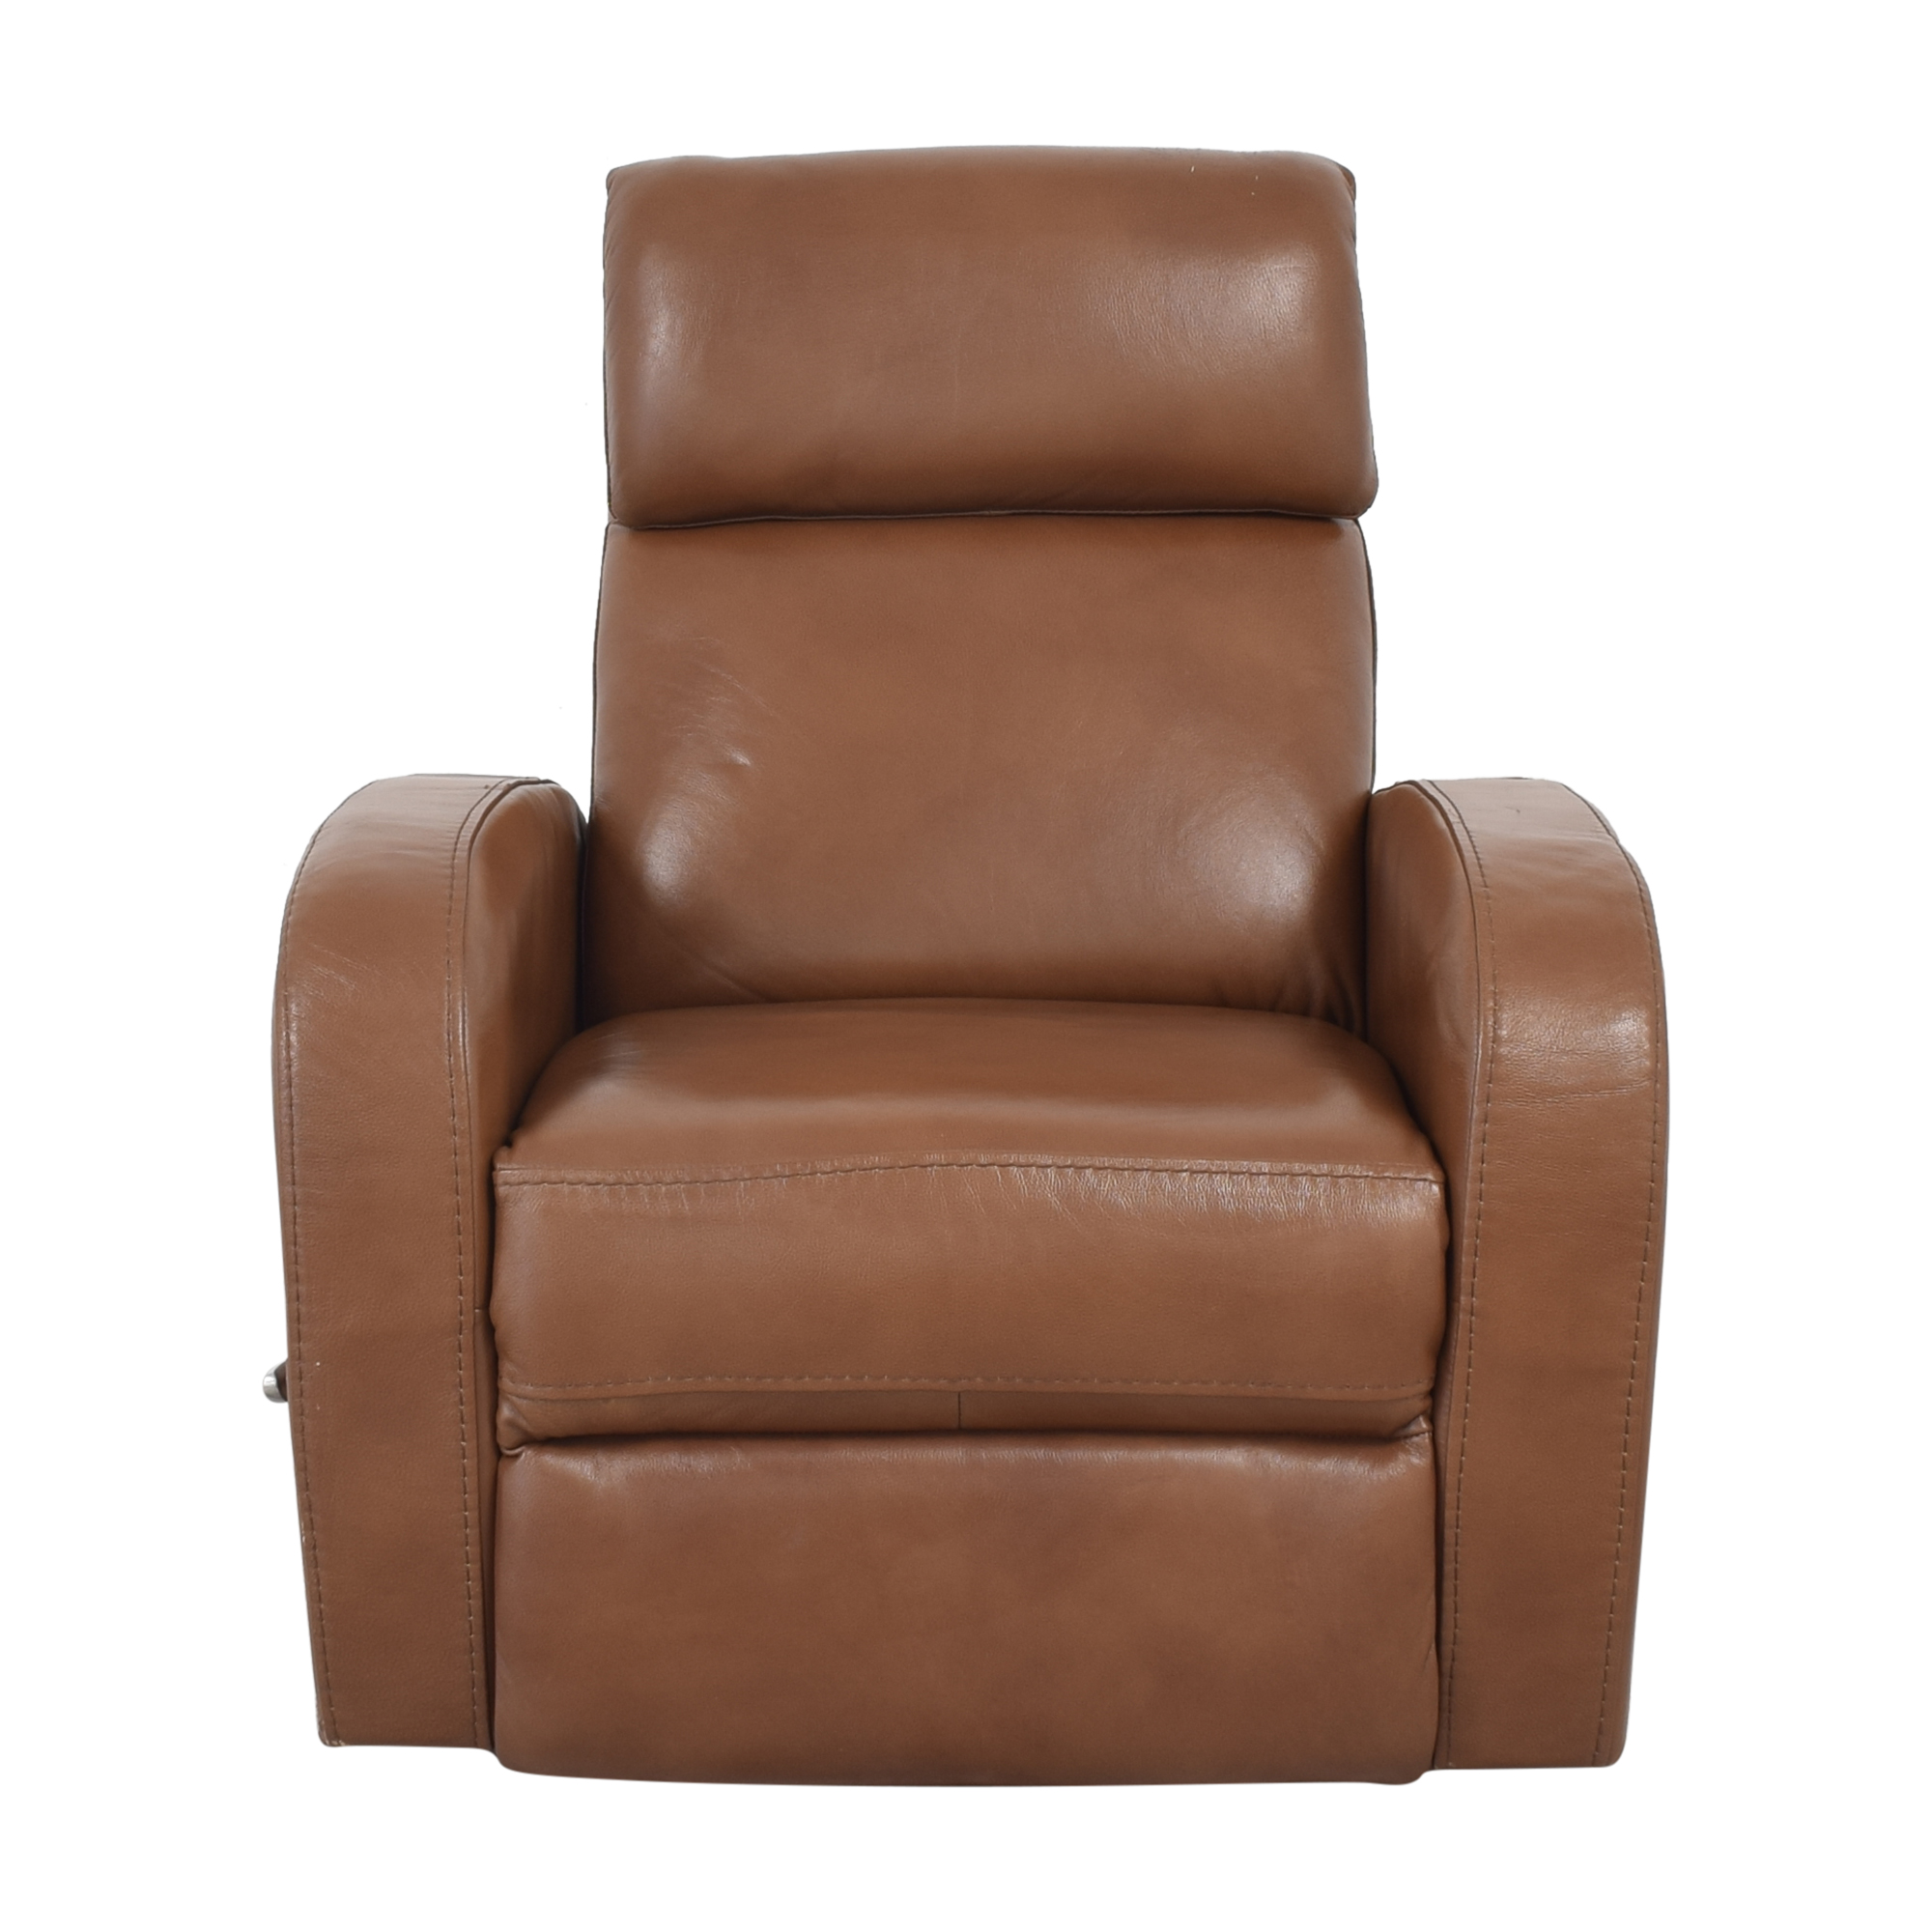 Manual Swivel Glider Recliner Macy's